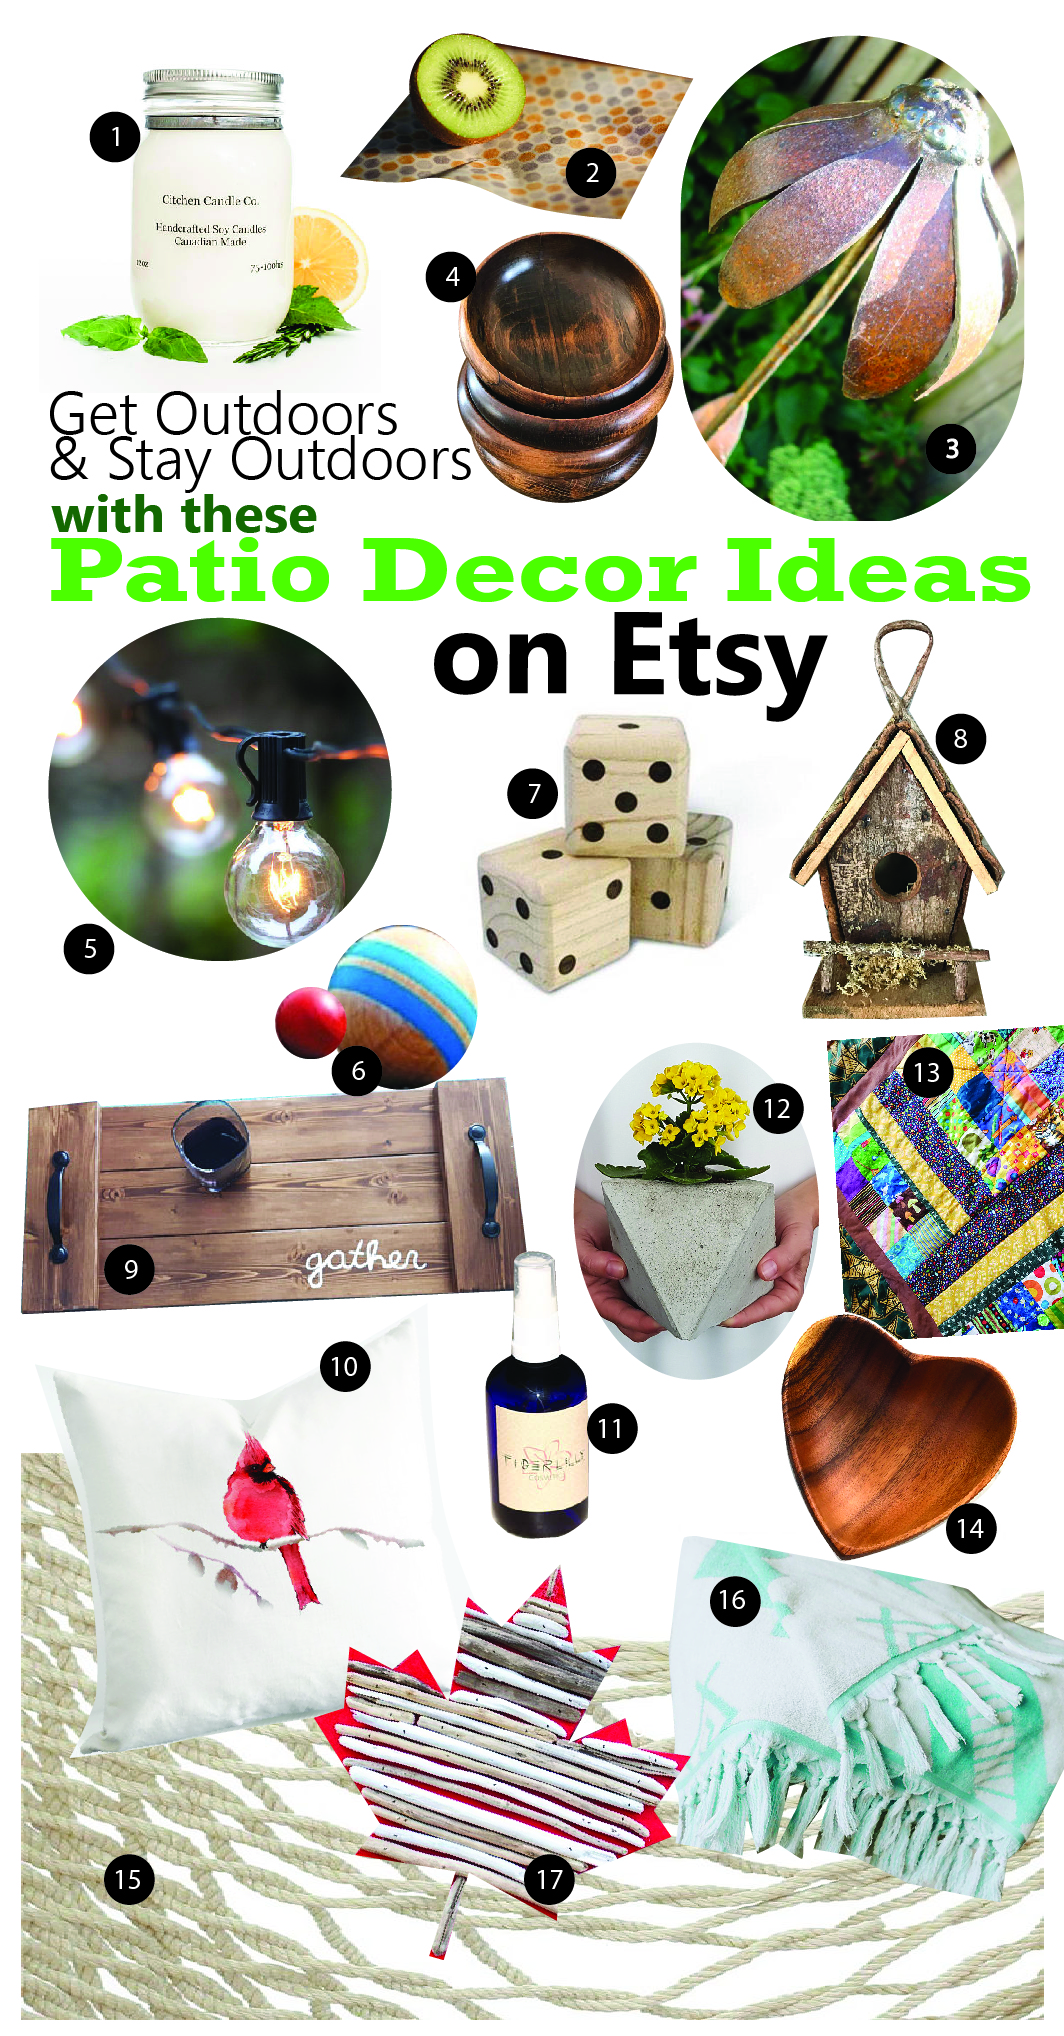 Collage of eco-friendly patio decor ideas from Etsy